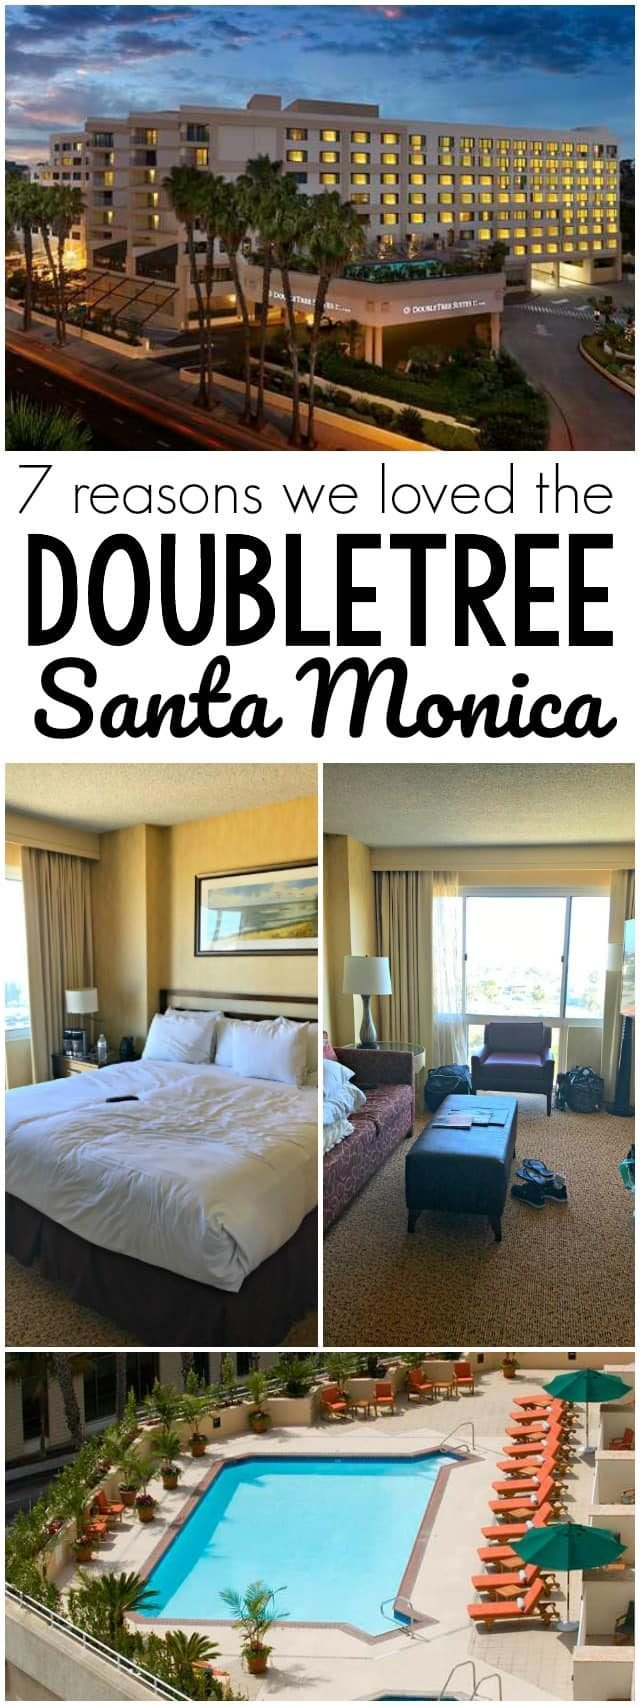 7 Reasons why we loved the DoubleTree Hotel Santa Monica - this hotel is perfect for families visiting Santa Monica, CA! It's the perfect location and the rooms are large.